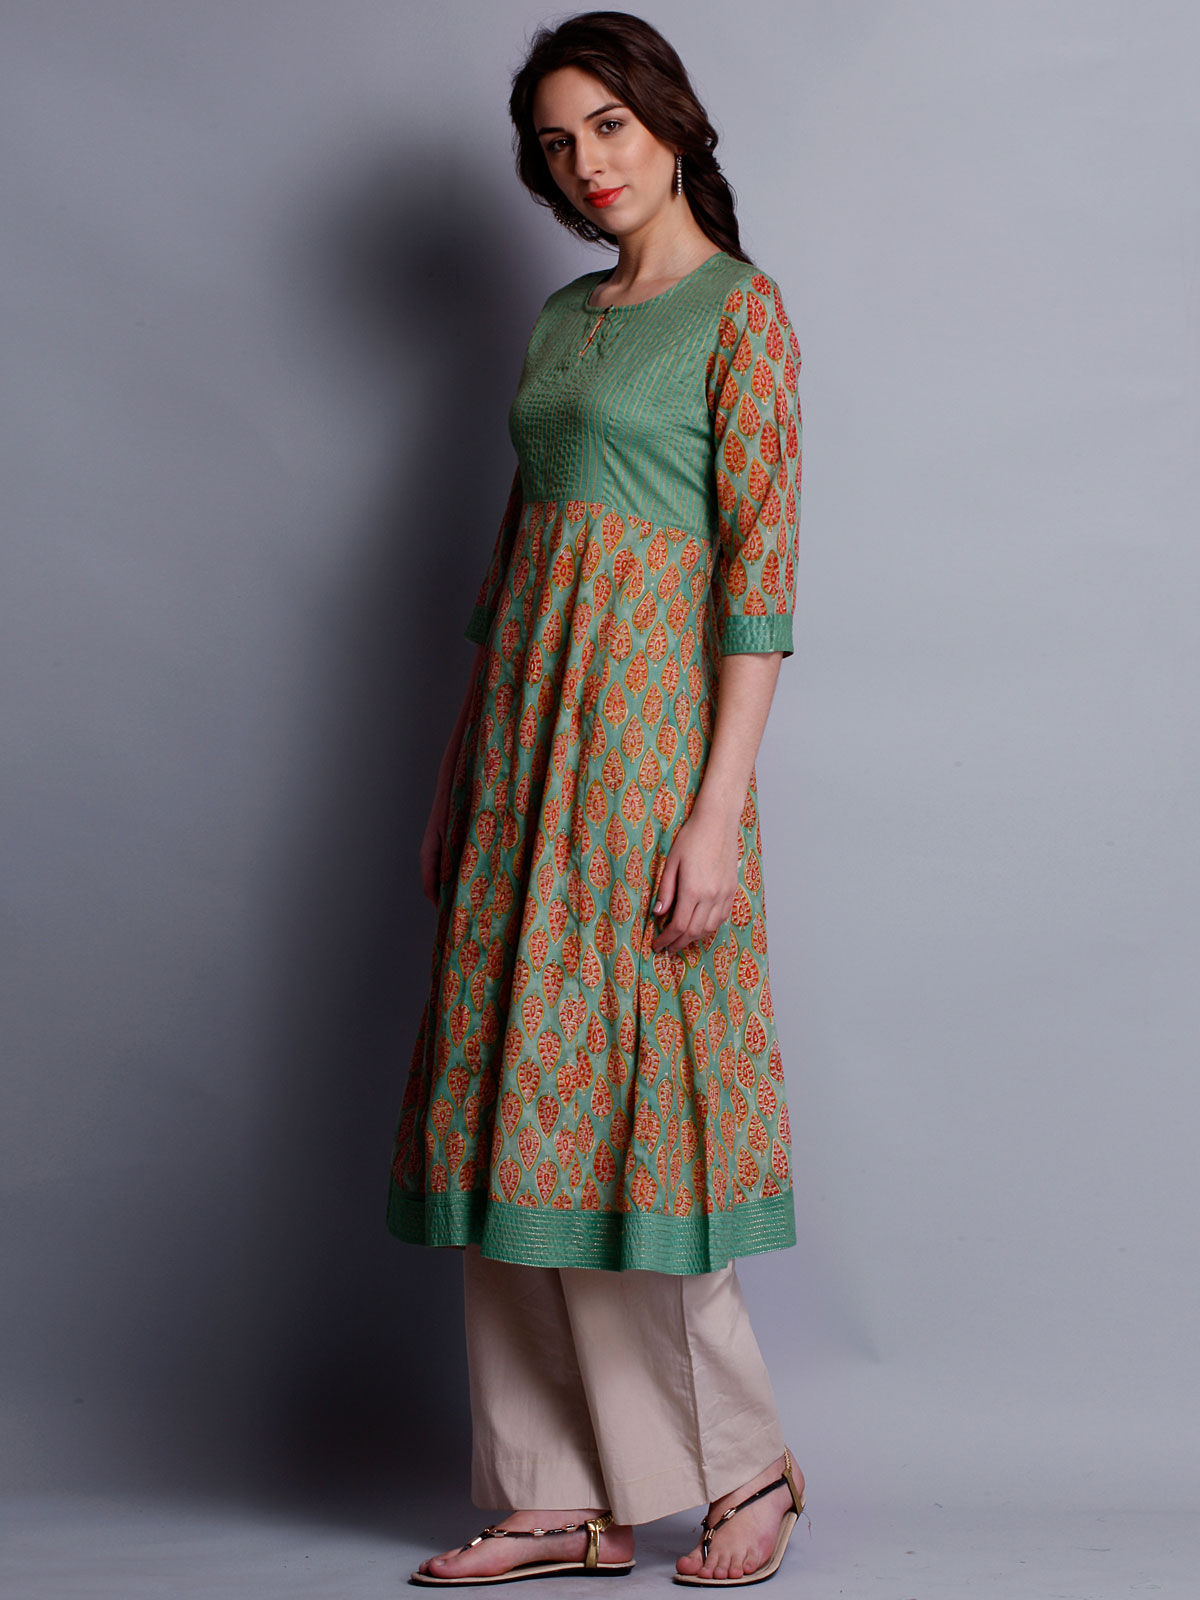 Block paisley printed 3/4th sleeves kurta with plain bodice